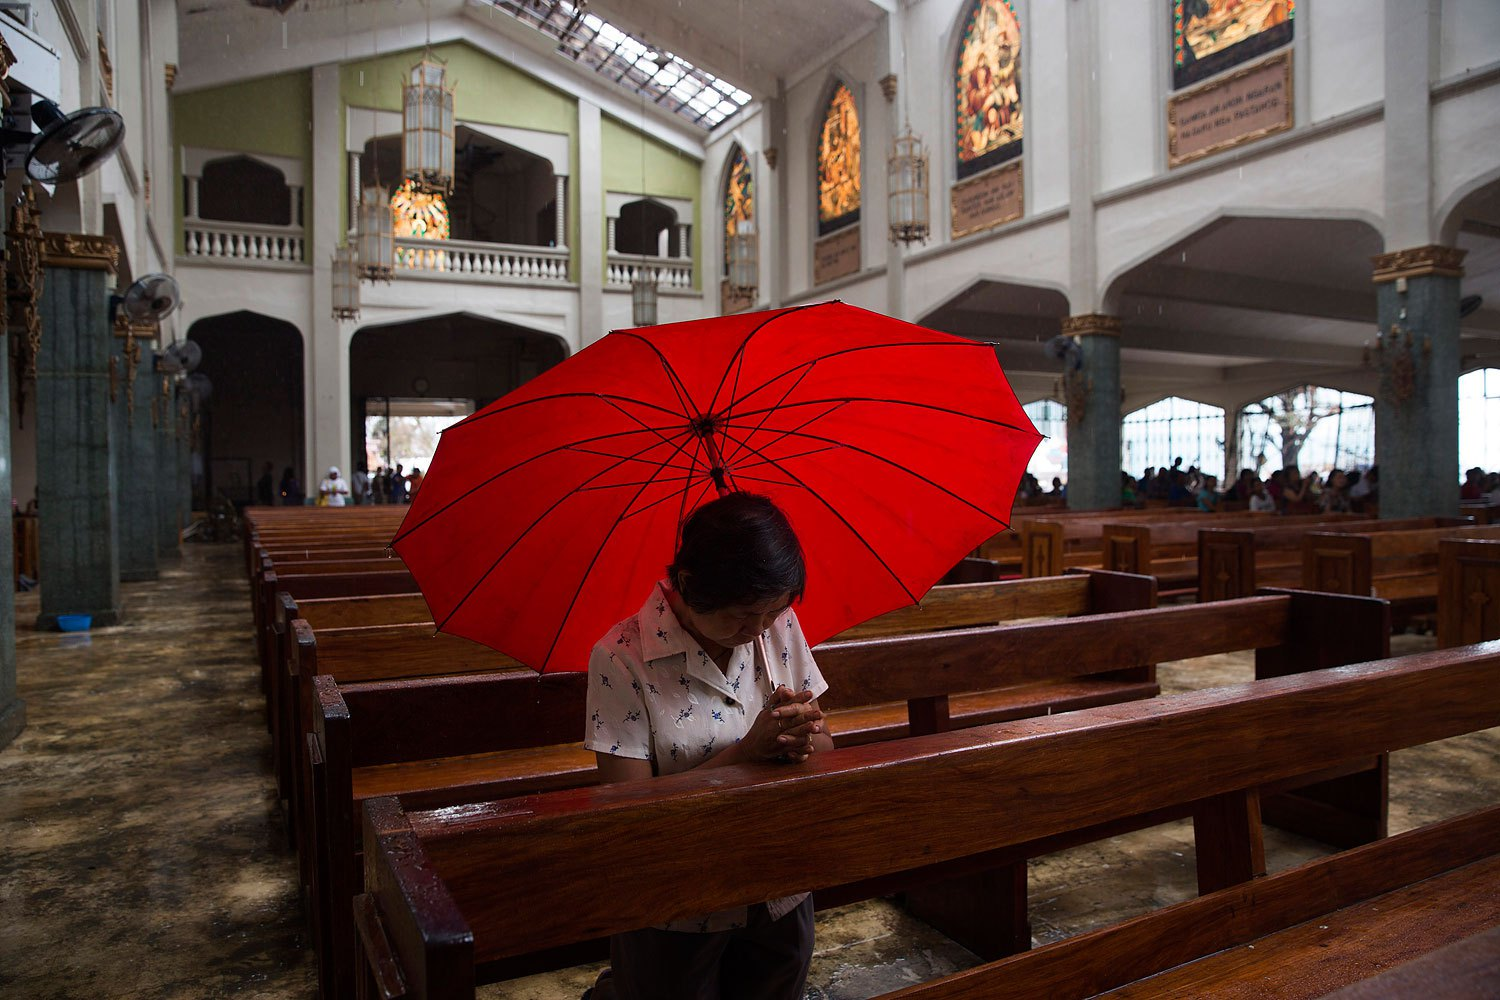 A woman prays during mass with an umbrella to protect herself from the rain coming in through the Santo Nino Church roof that was damaged by  Typhoon Haiyan in Tacloban, Philippines on November 17, 2013.